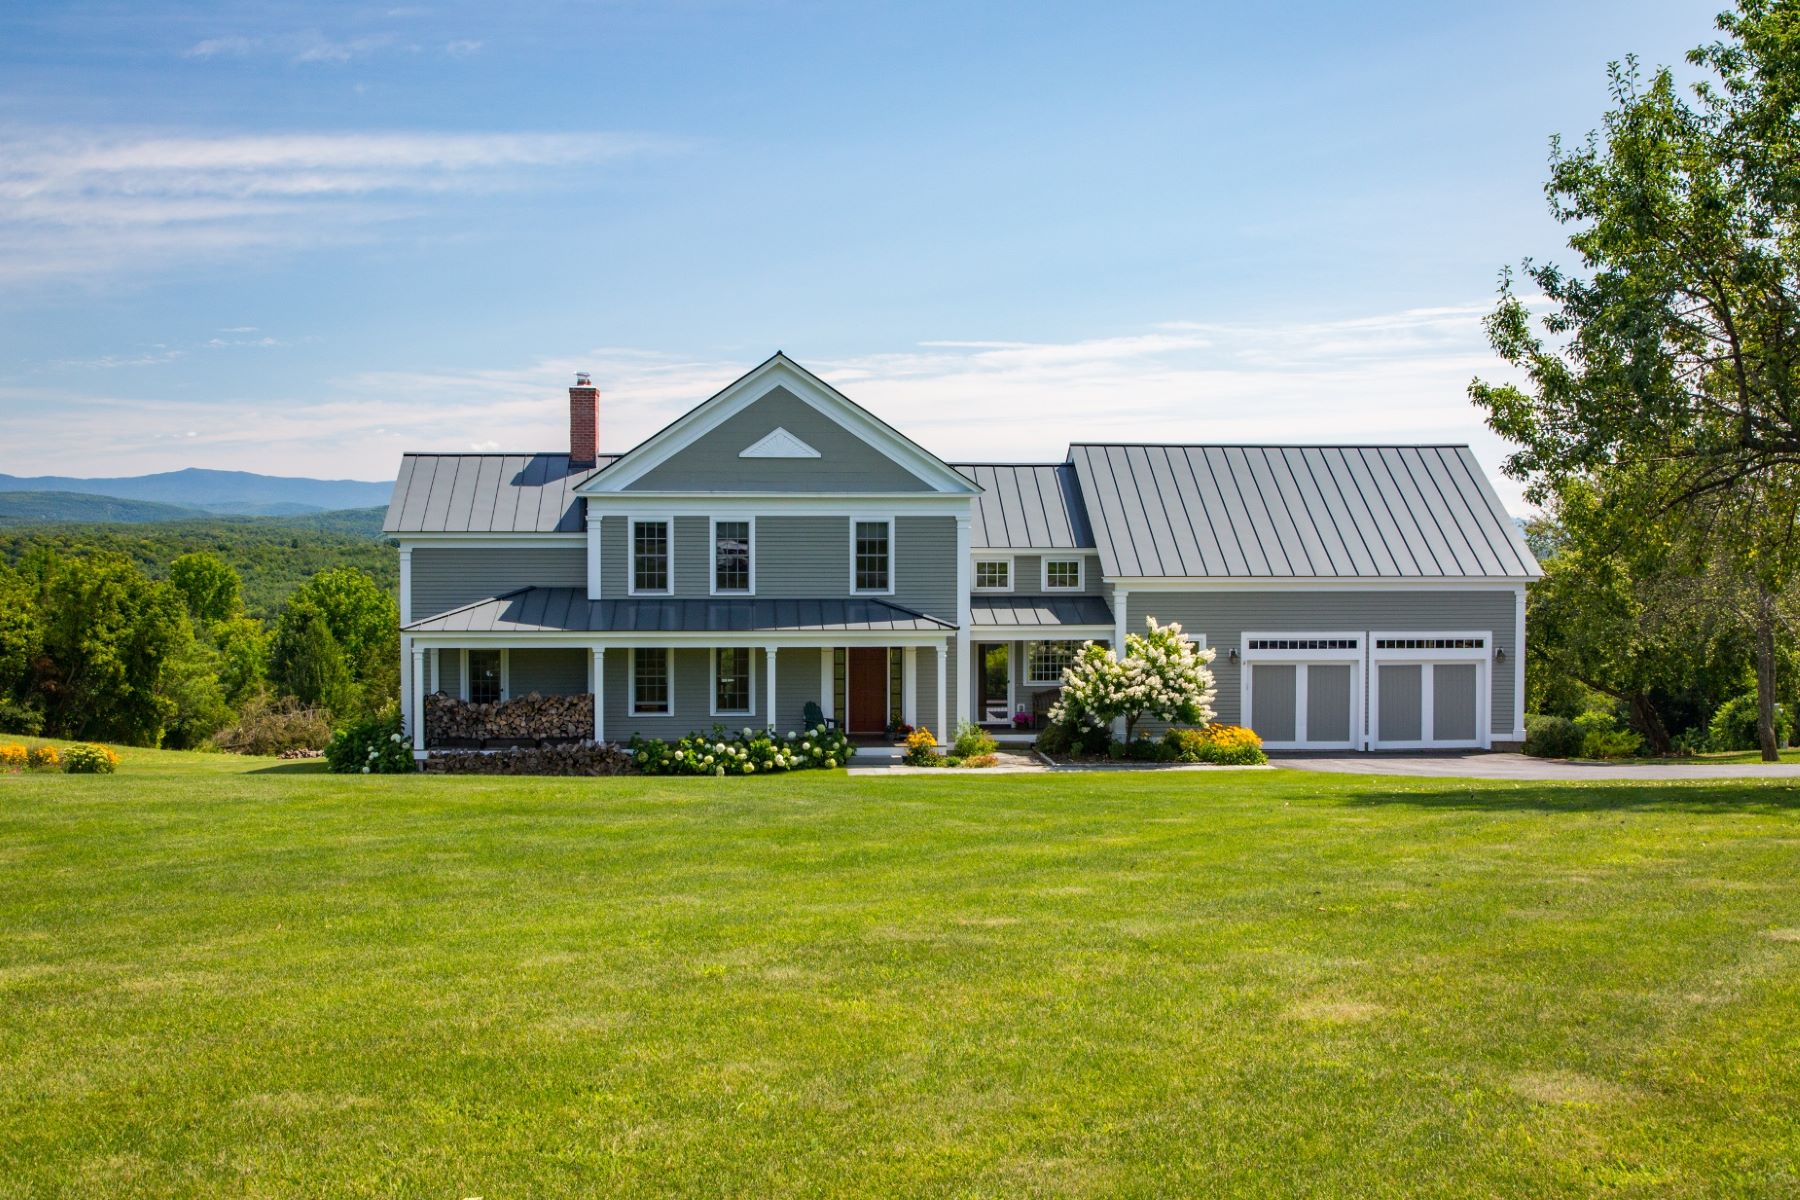 Single Family Home for Sale at Custom Greek Revival Farmhouse 199 Inn Rd Charlotte, Vermont, 05445 United States